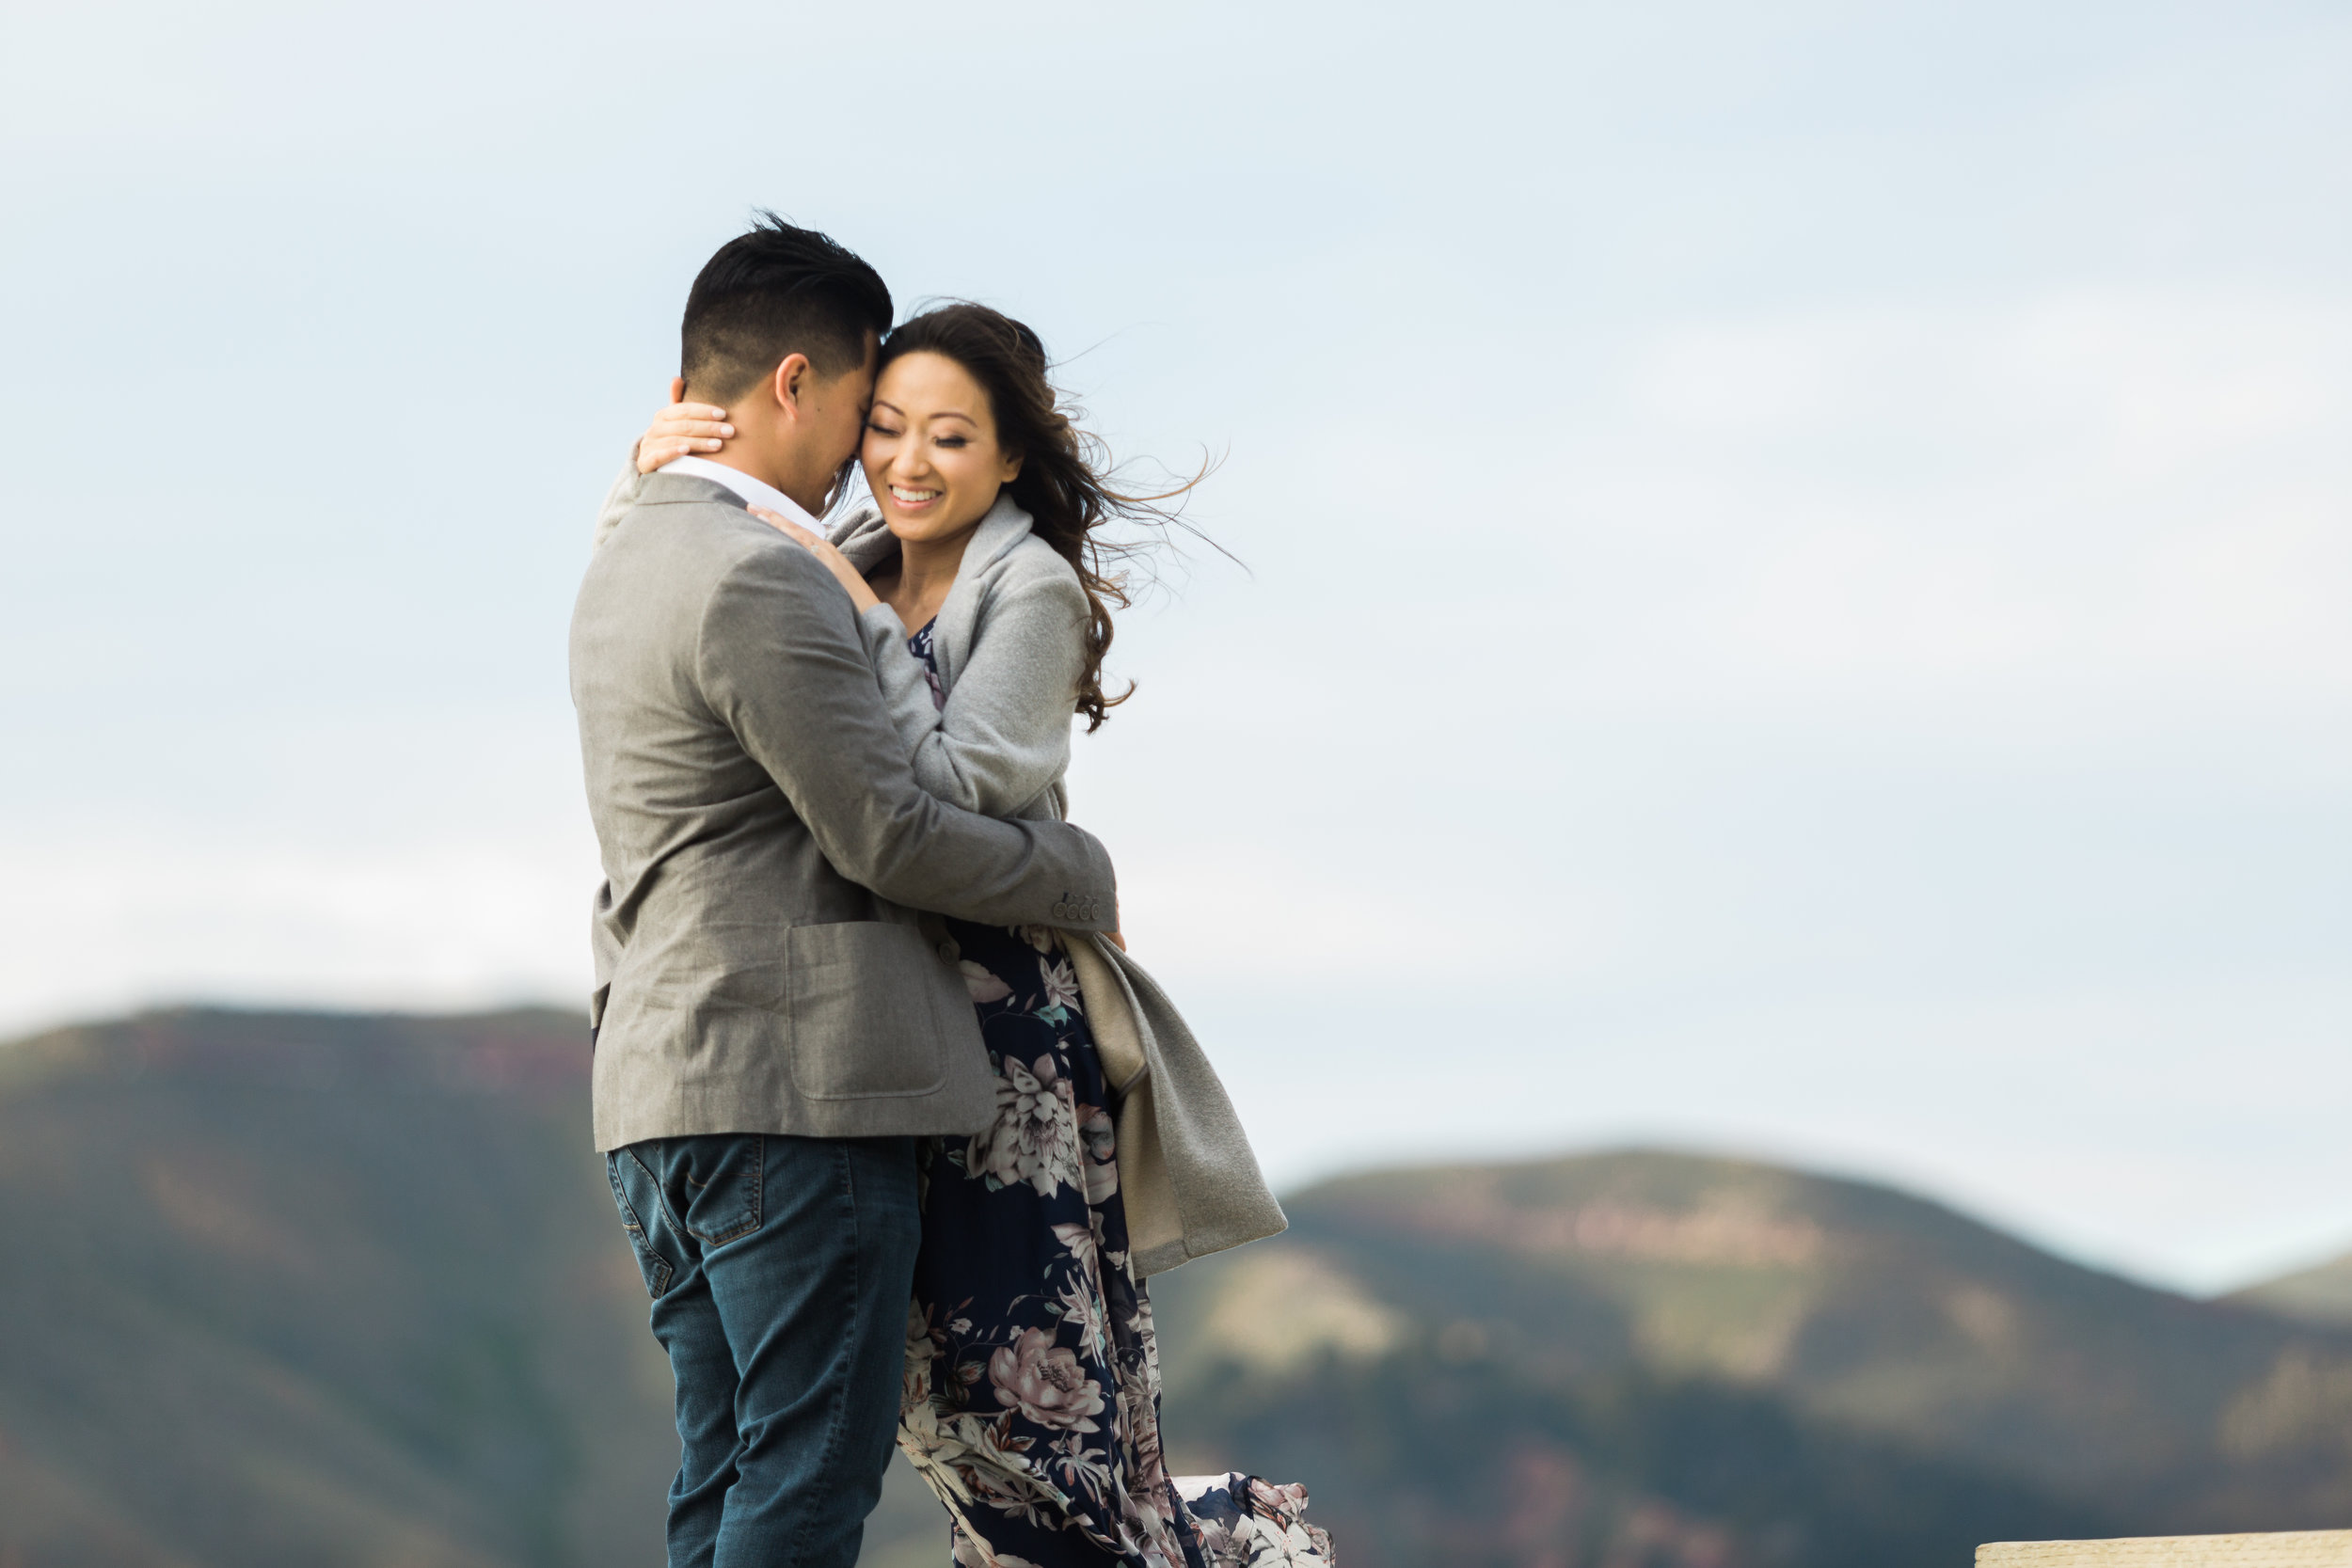 San-Francisco-Engagement-Session-Tara-Nichole-Photo-22.jpg